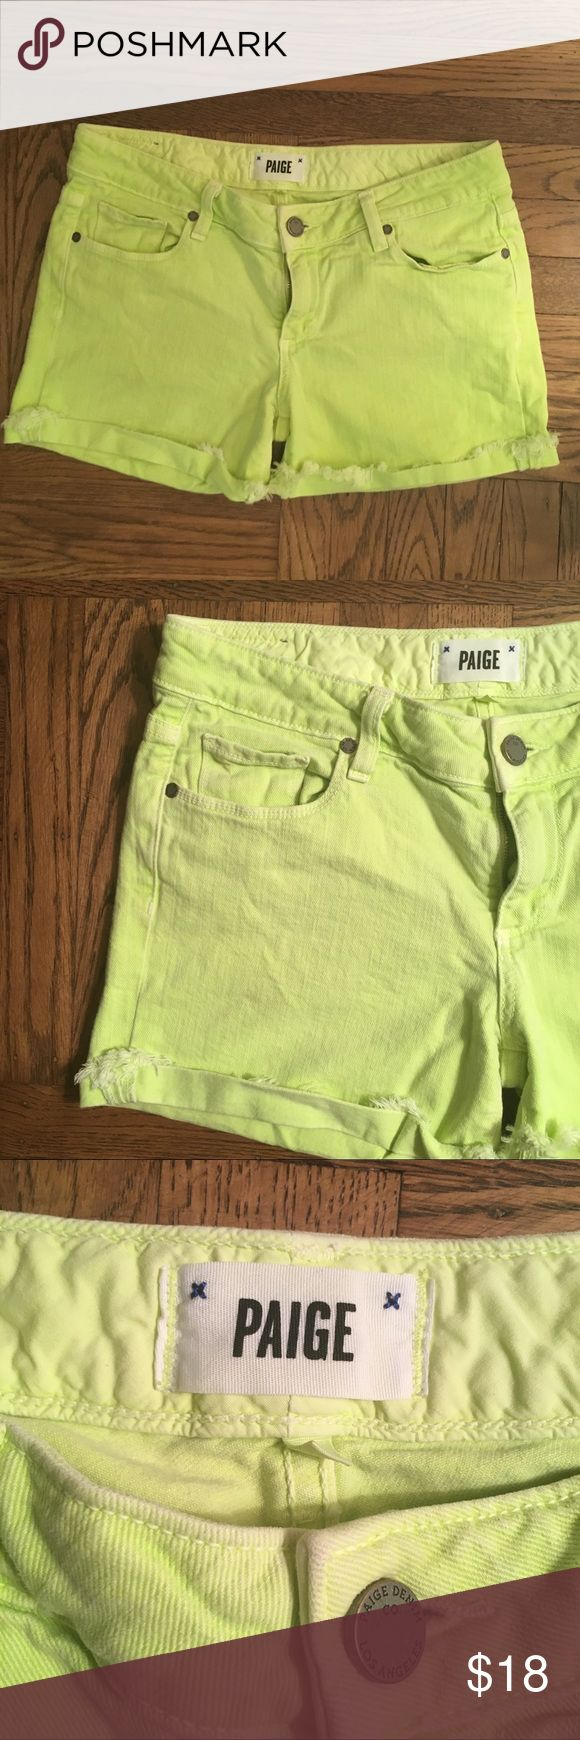 PAIGE Anthropologie Neon Green Yellow Shorts Sz 27 Paige Size 27 Jimmy Jimmy Shorts Neon Green Shorts no holes or stains, in excellent used condition!  Message me with any questions! Always open to offers :) Anthropologie Shorts Jean Shorts